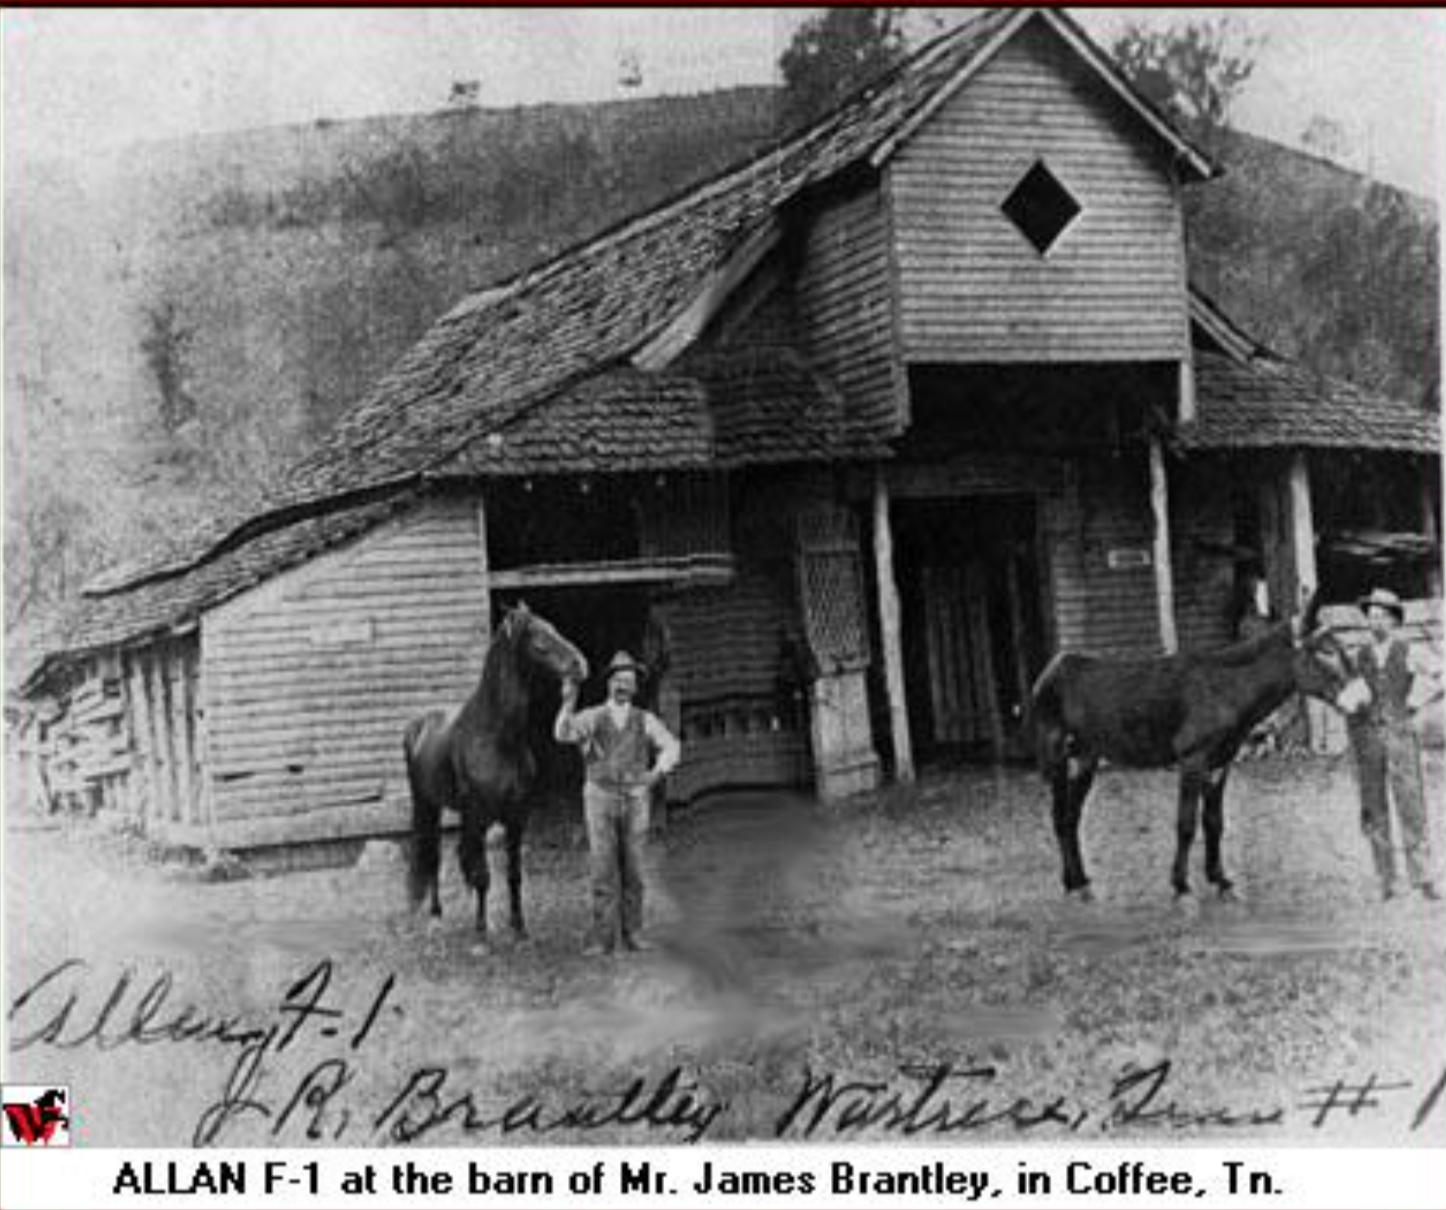 ALLAN F-1 - Founding sire of Tennessee Walking Horse Breed, 1896 - 1910.